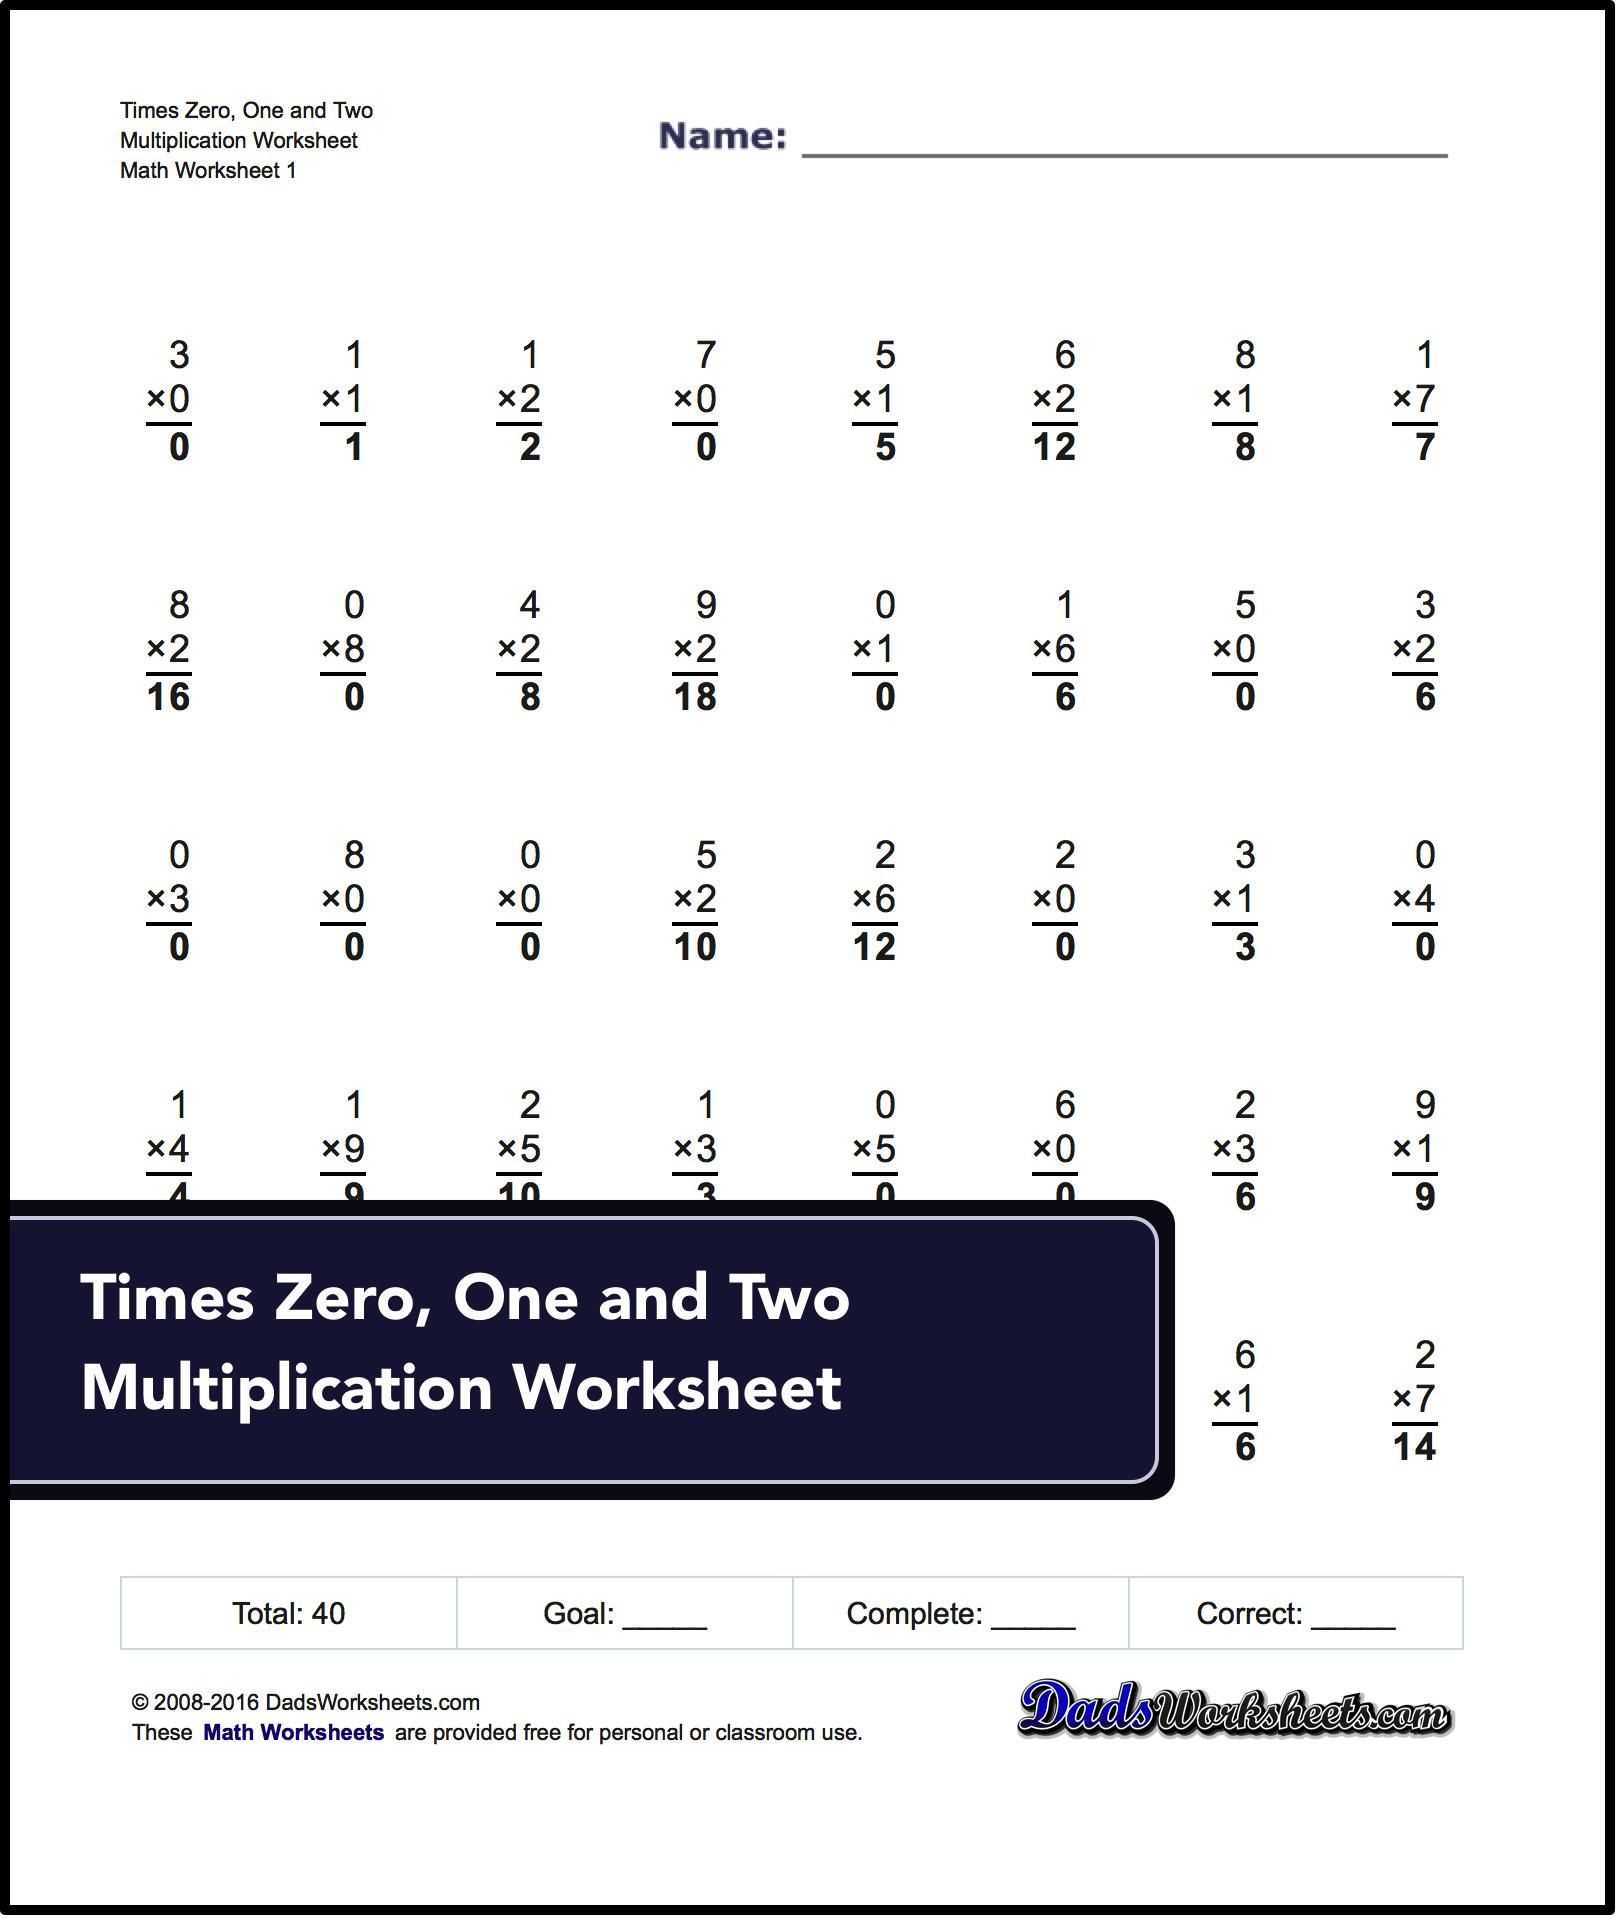 Math assessment Worksheets together with Conventional Times Table Math Worksheets these Multiplication